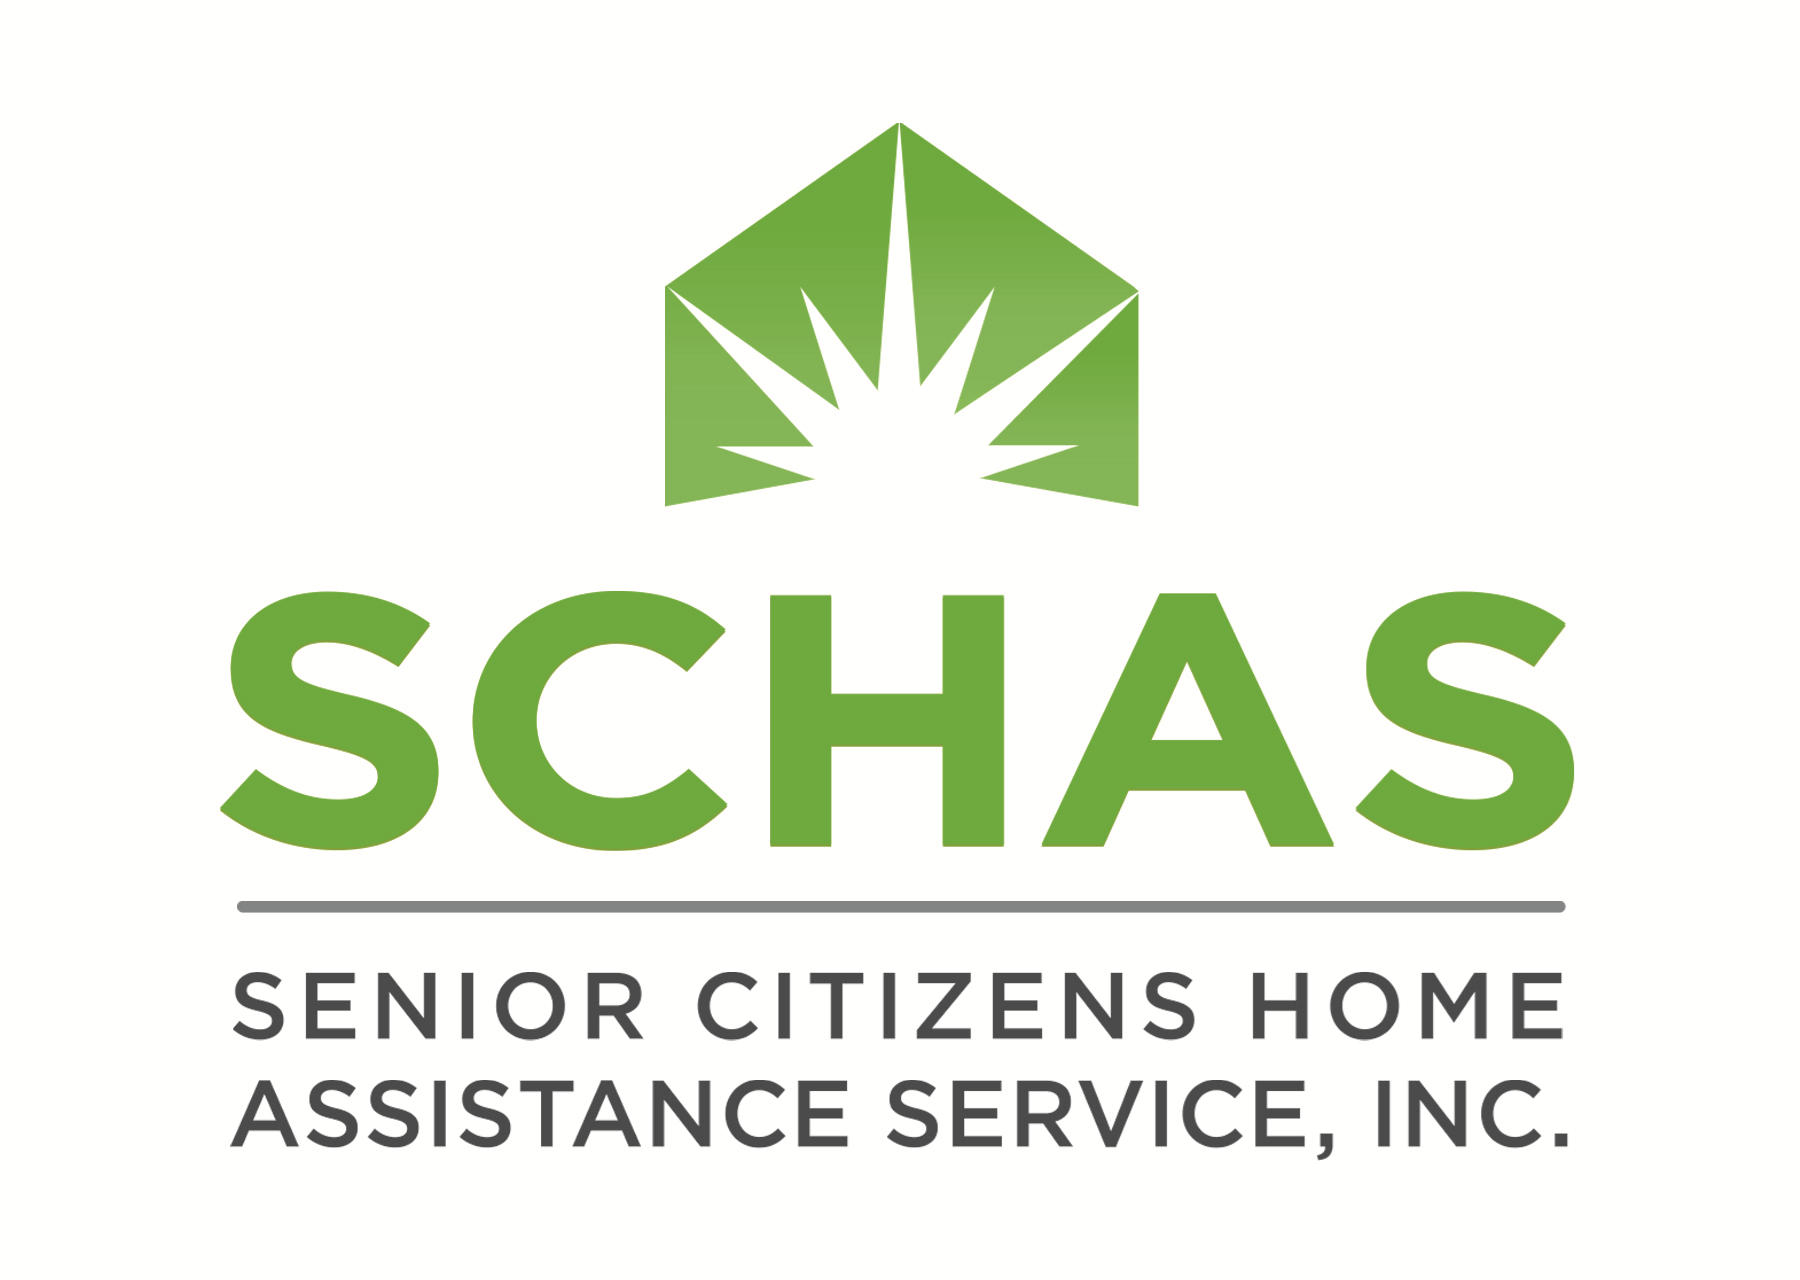 Senior Citizens Home Assistance Service, Inc.